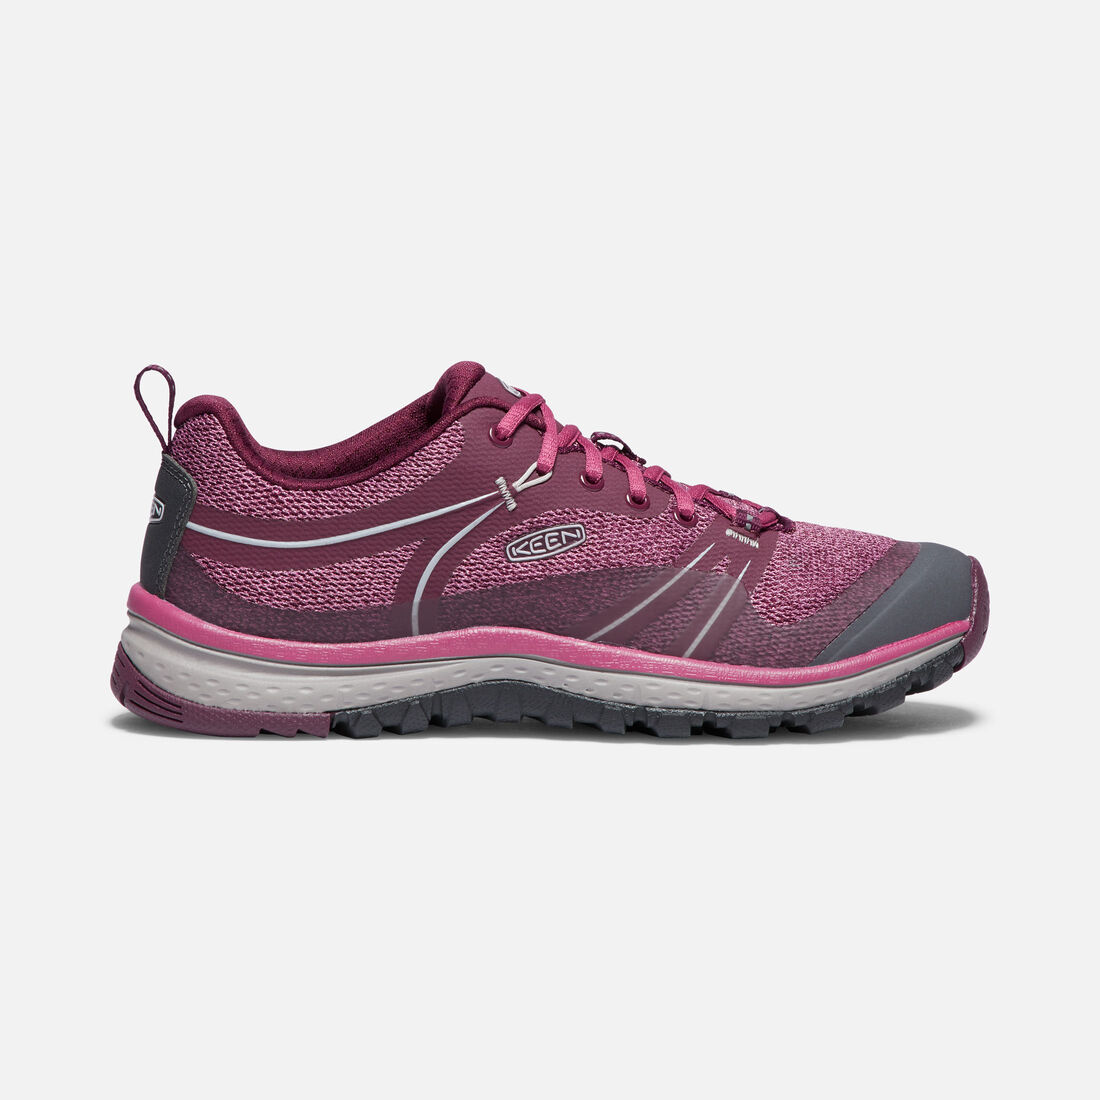 Women's TERRADORA in GRAPE WINE/RED VIOLET - large view.